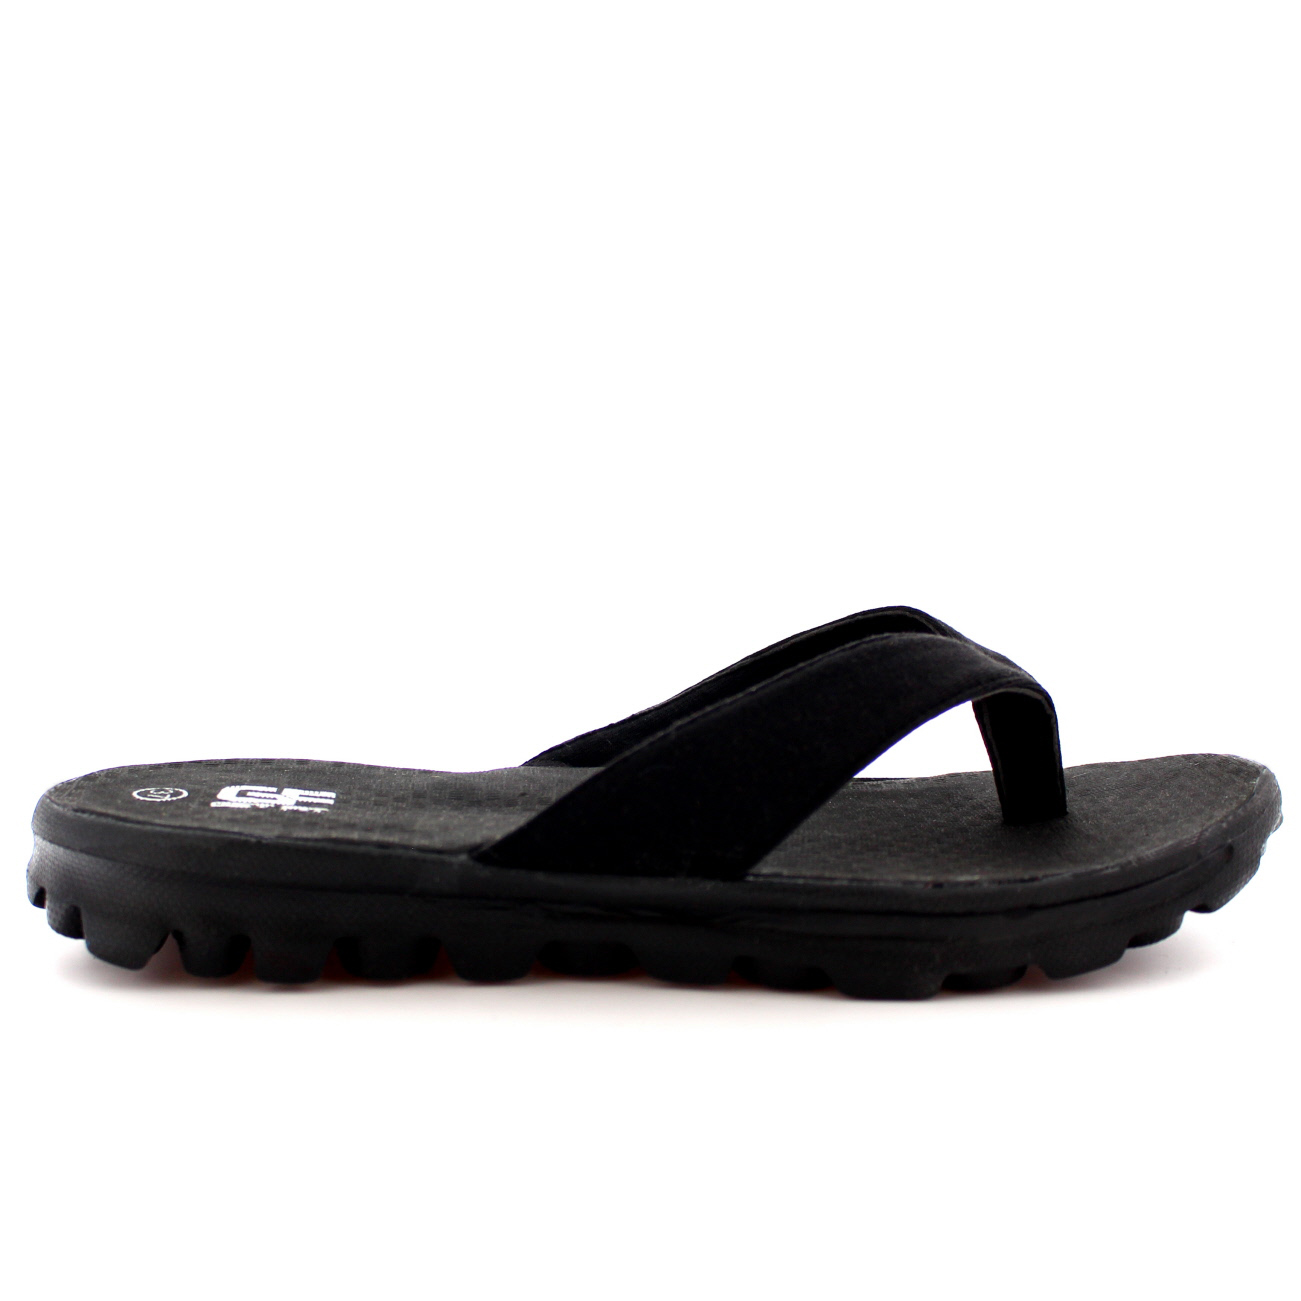 f10f1172d Mens Lightweight Toe Post Flip Flop Sports Walking Summer Sandals ...